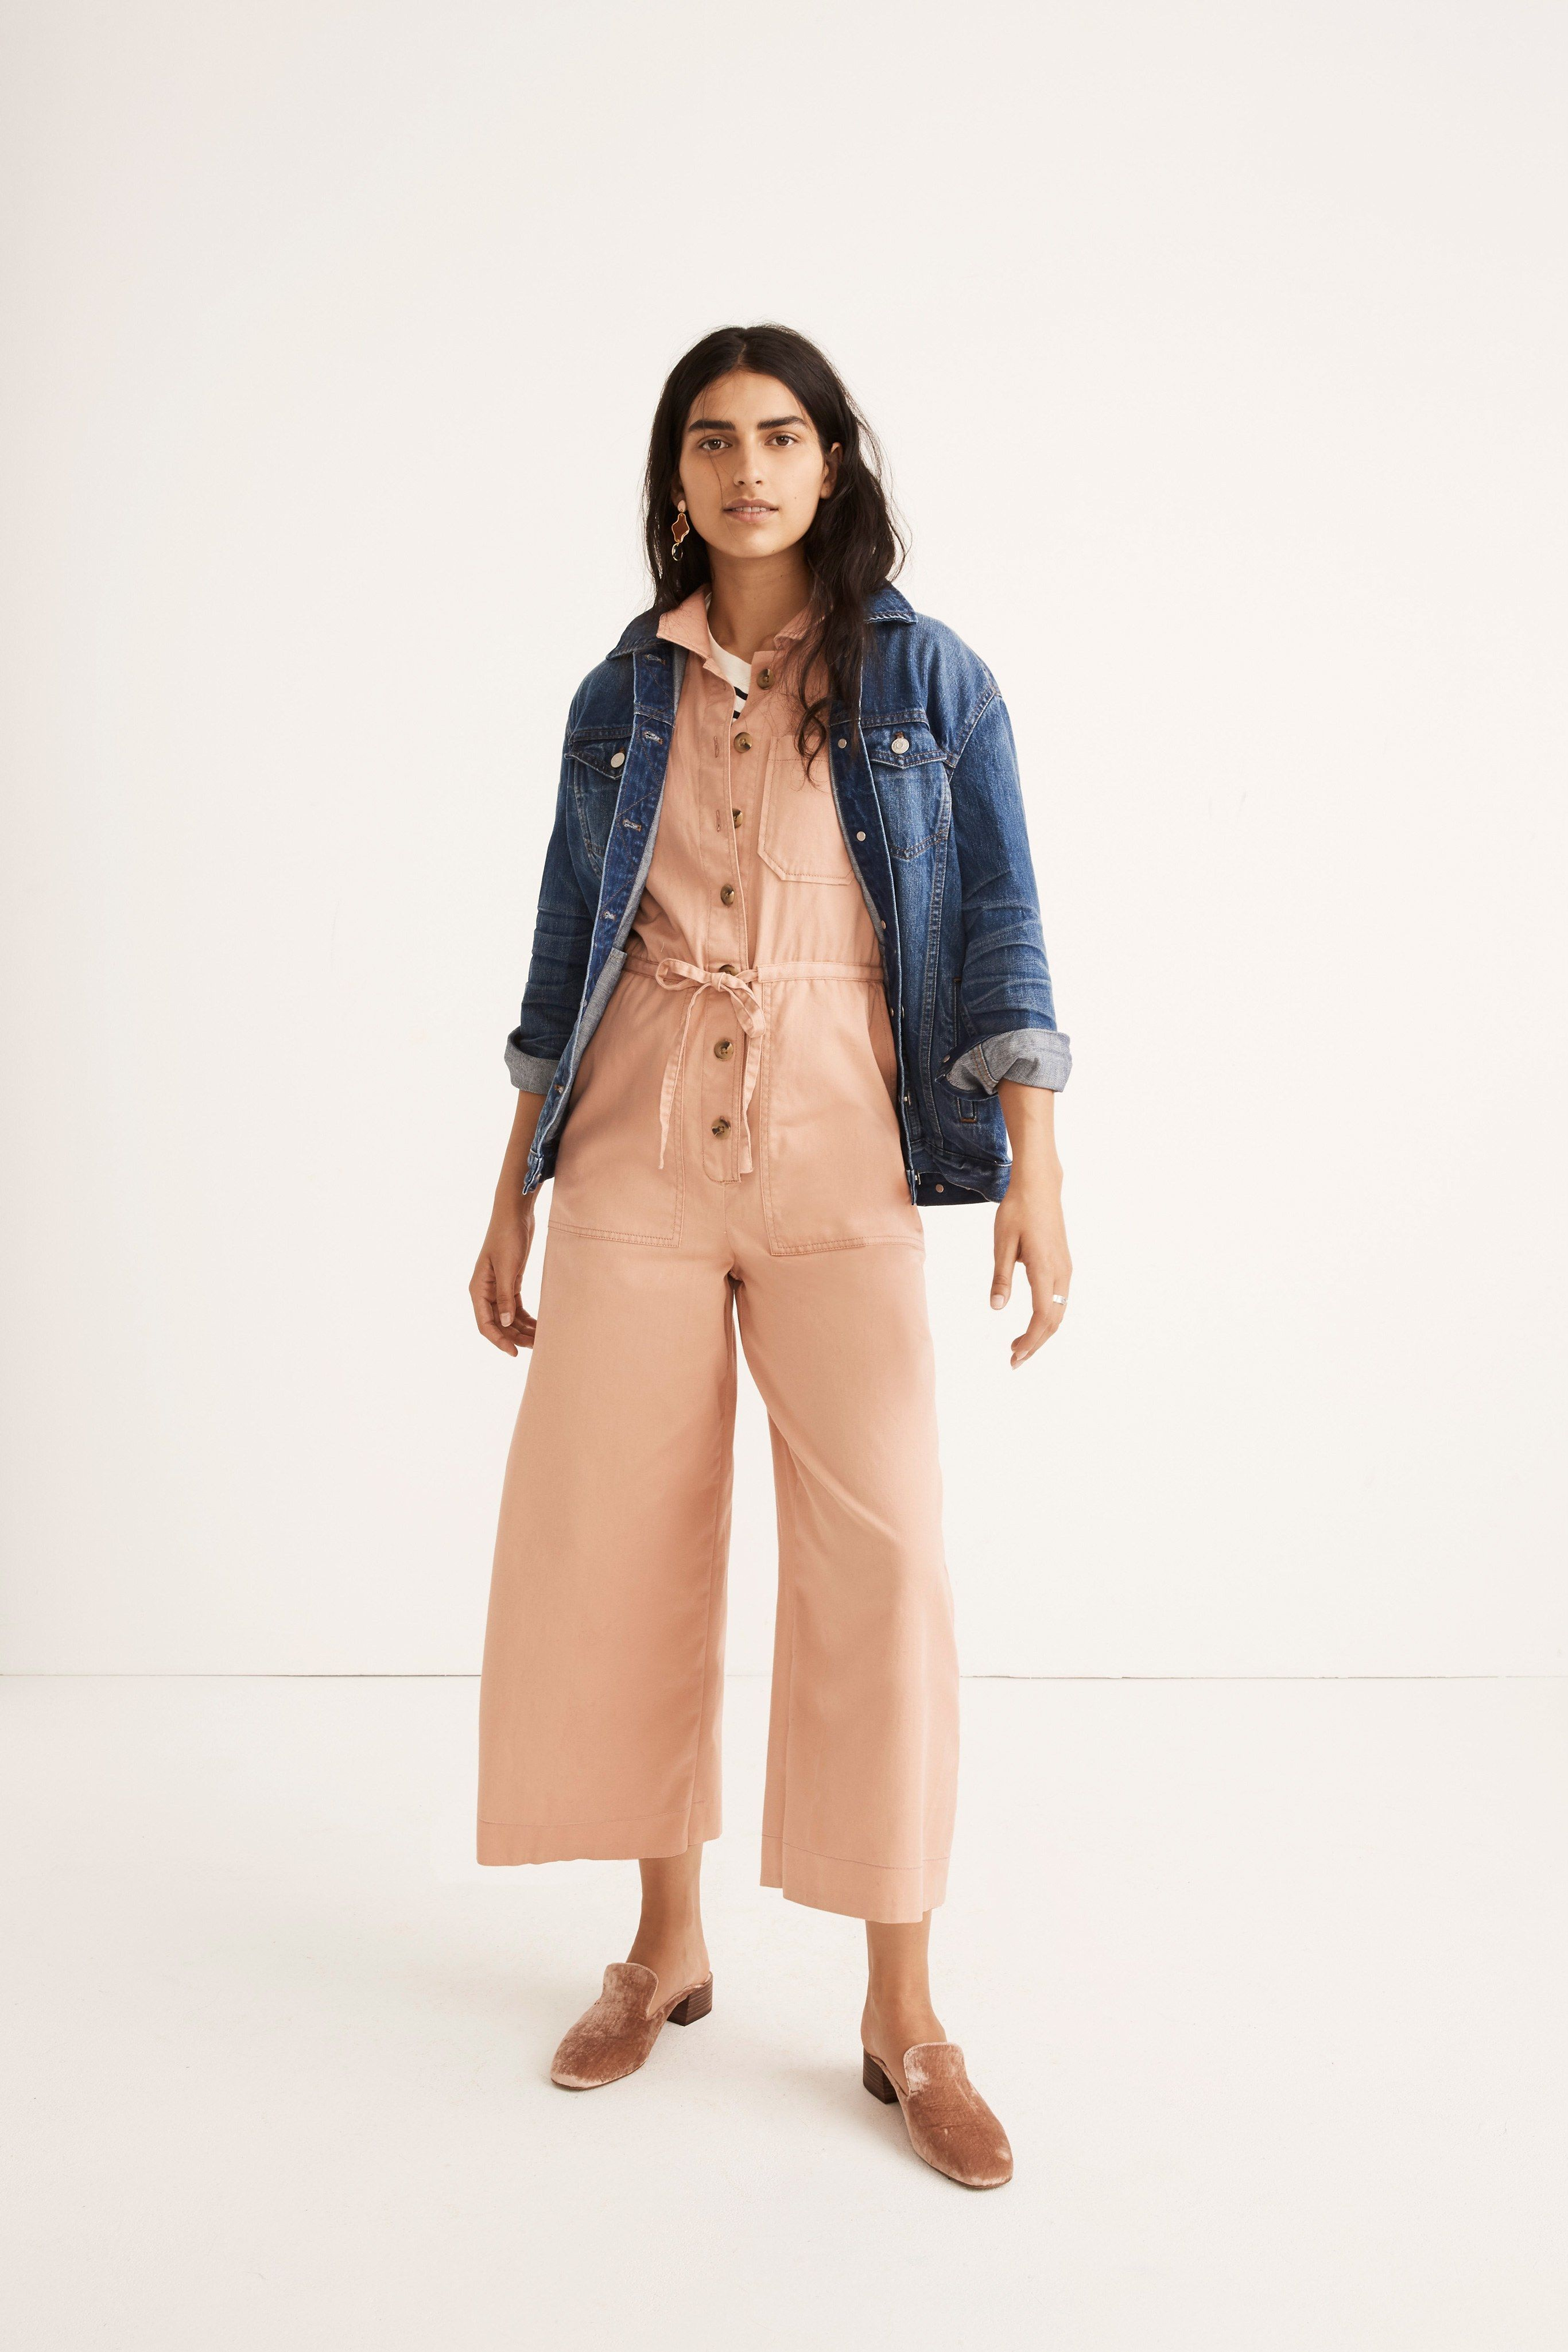 d5d6382350 Madewell Fall 2018 Ready-to-Wear Fashion Show in 2019